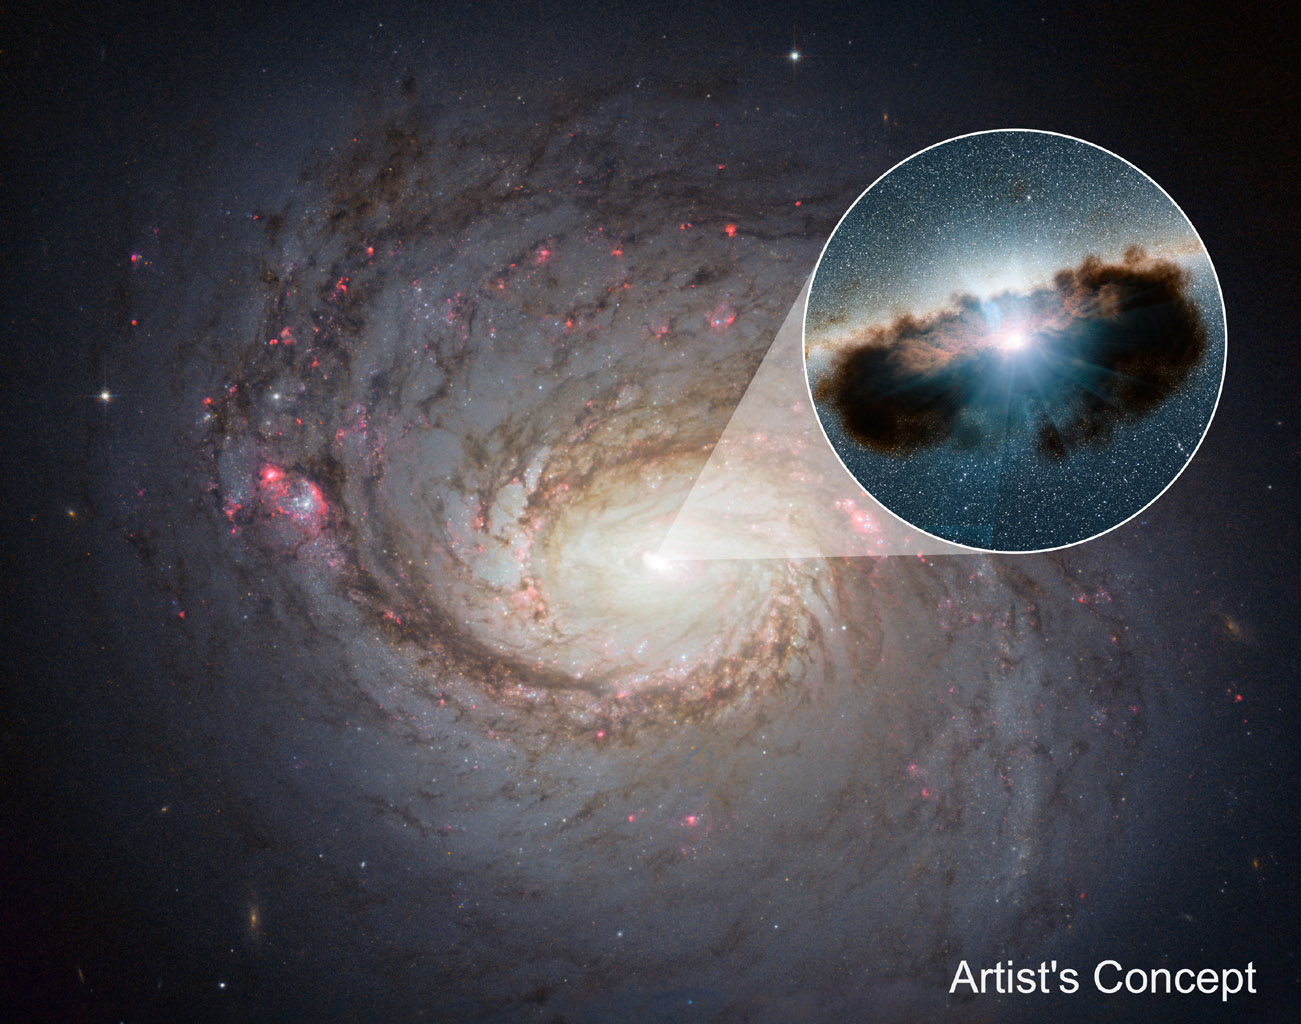 Galaxy NGC 1068 can be seen in close-up in this view from NASA's Hubble